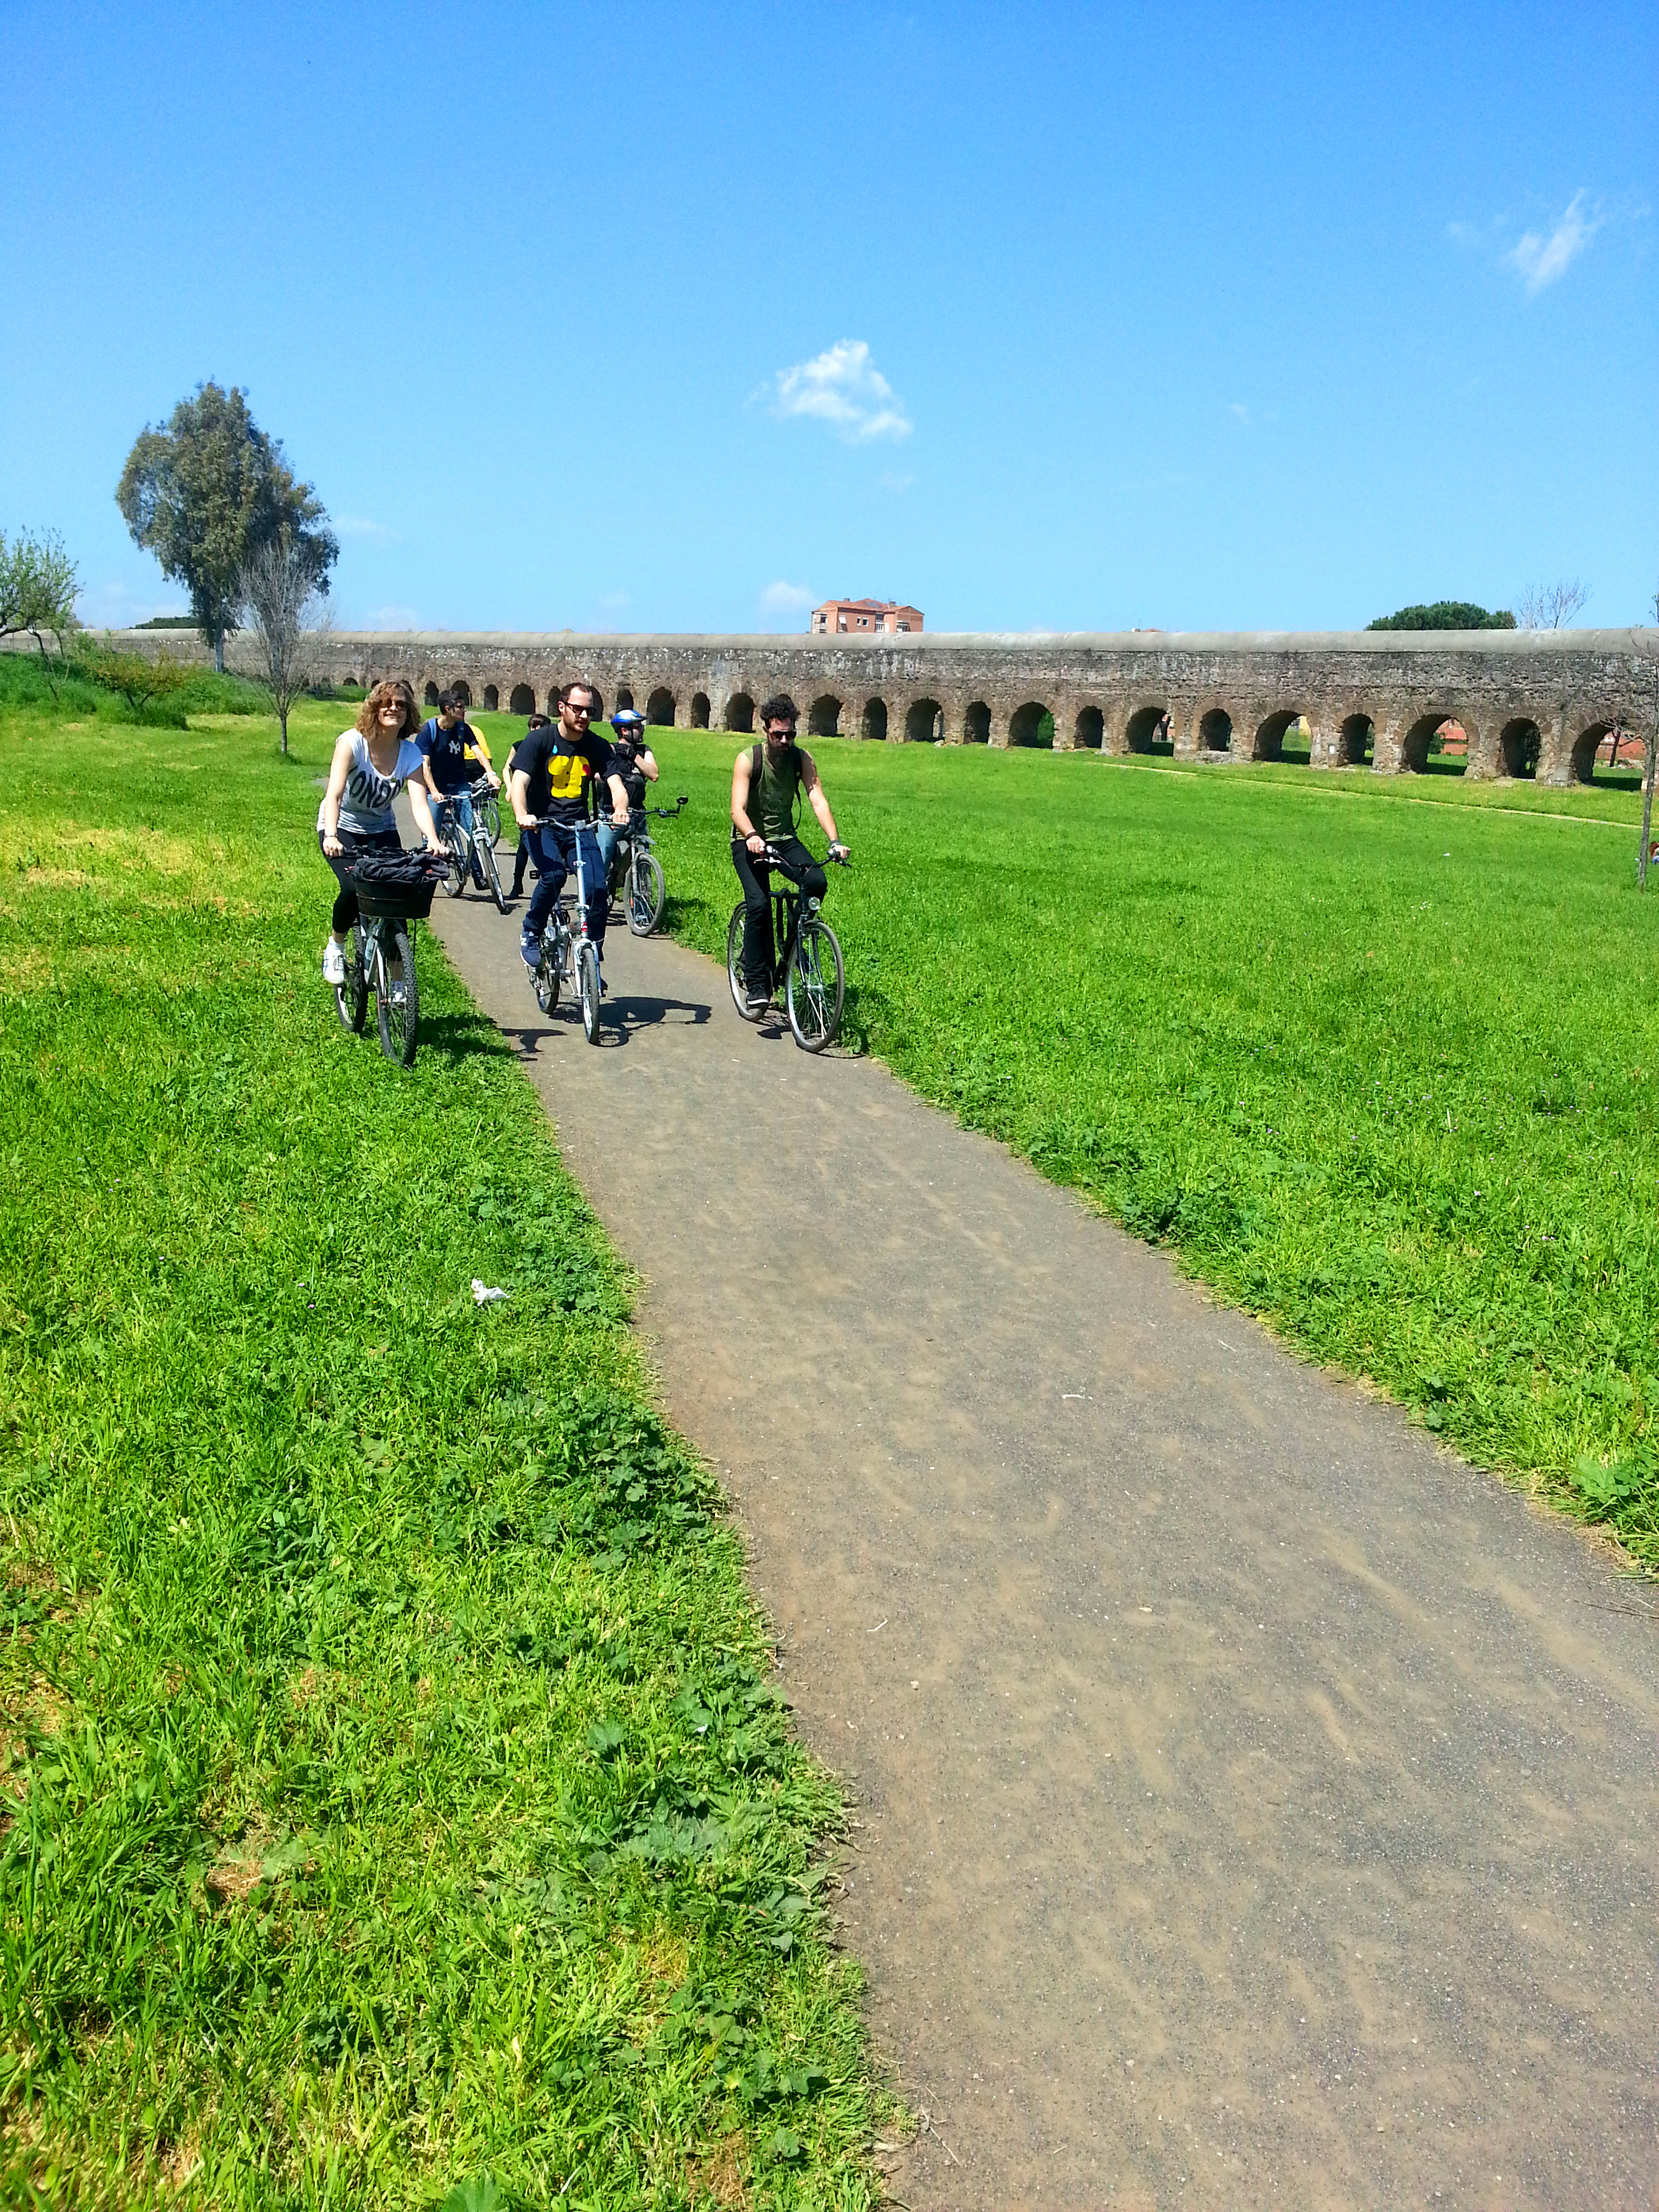 5 cheap and cheerful ideas for getting back to nature in Rome, including parks, beaches, bike routes, picnic ideas and lakes.